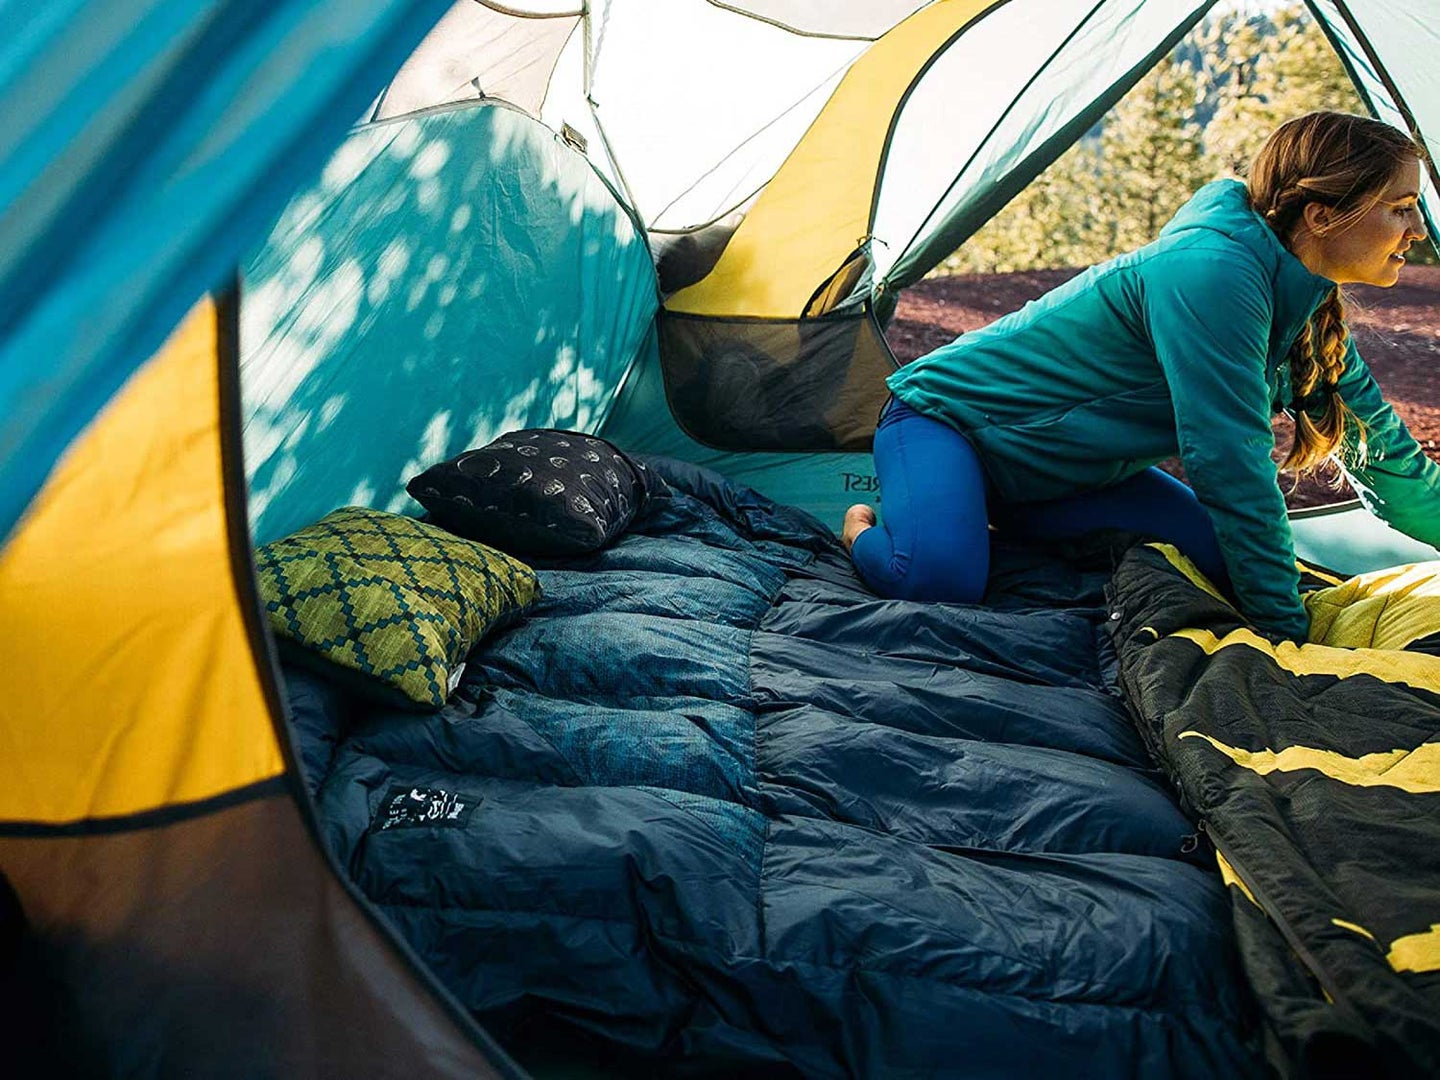 Woman in tent with sleeping bag and camping pillows.